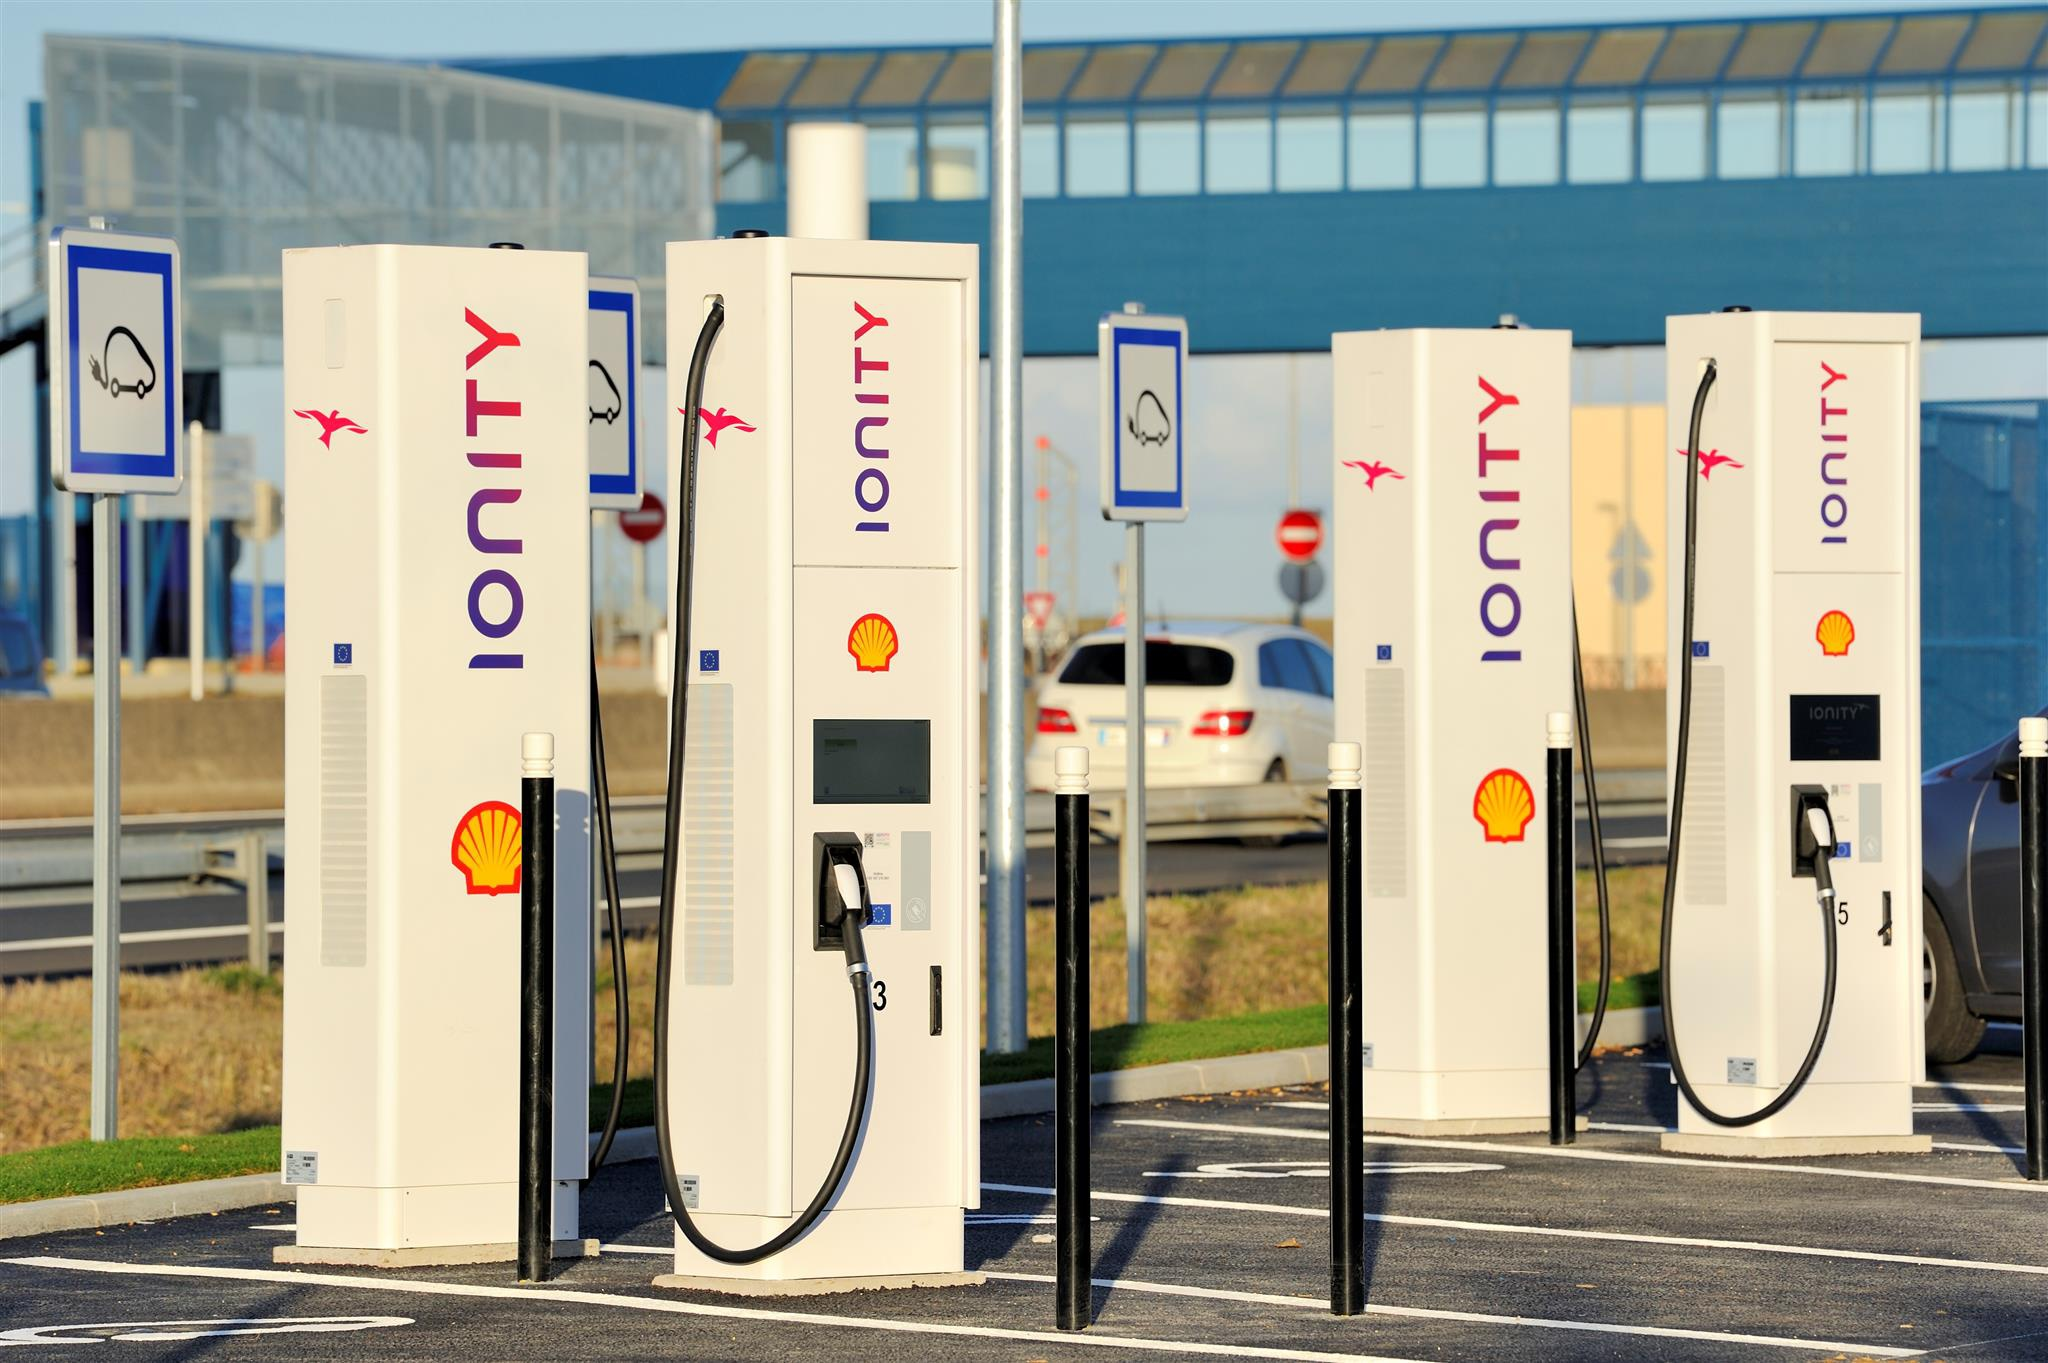 IONITY chooses SPIE for the deployment of its pan-European network of electric vehicle charging stations